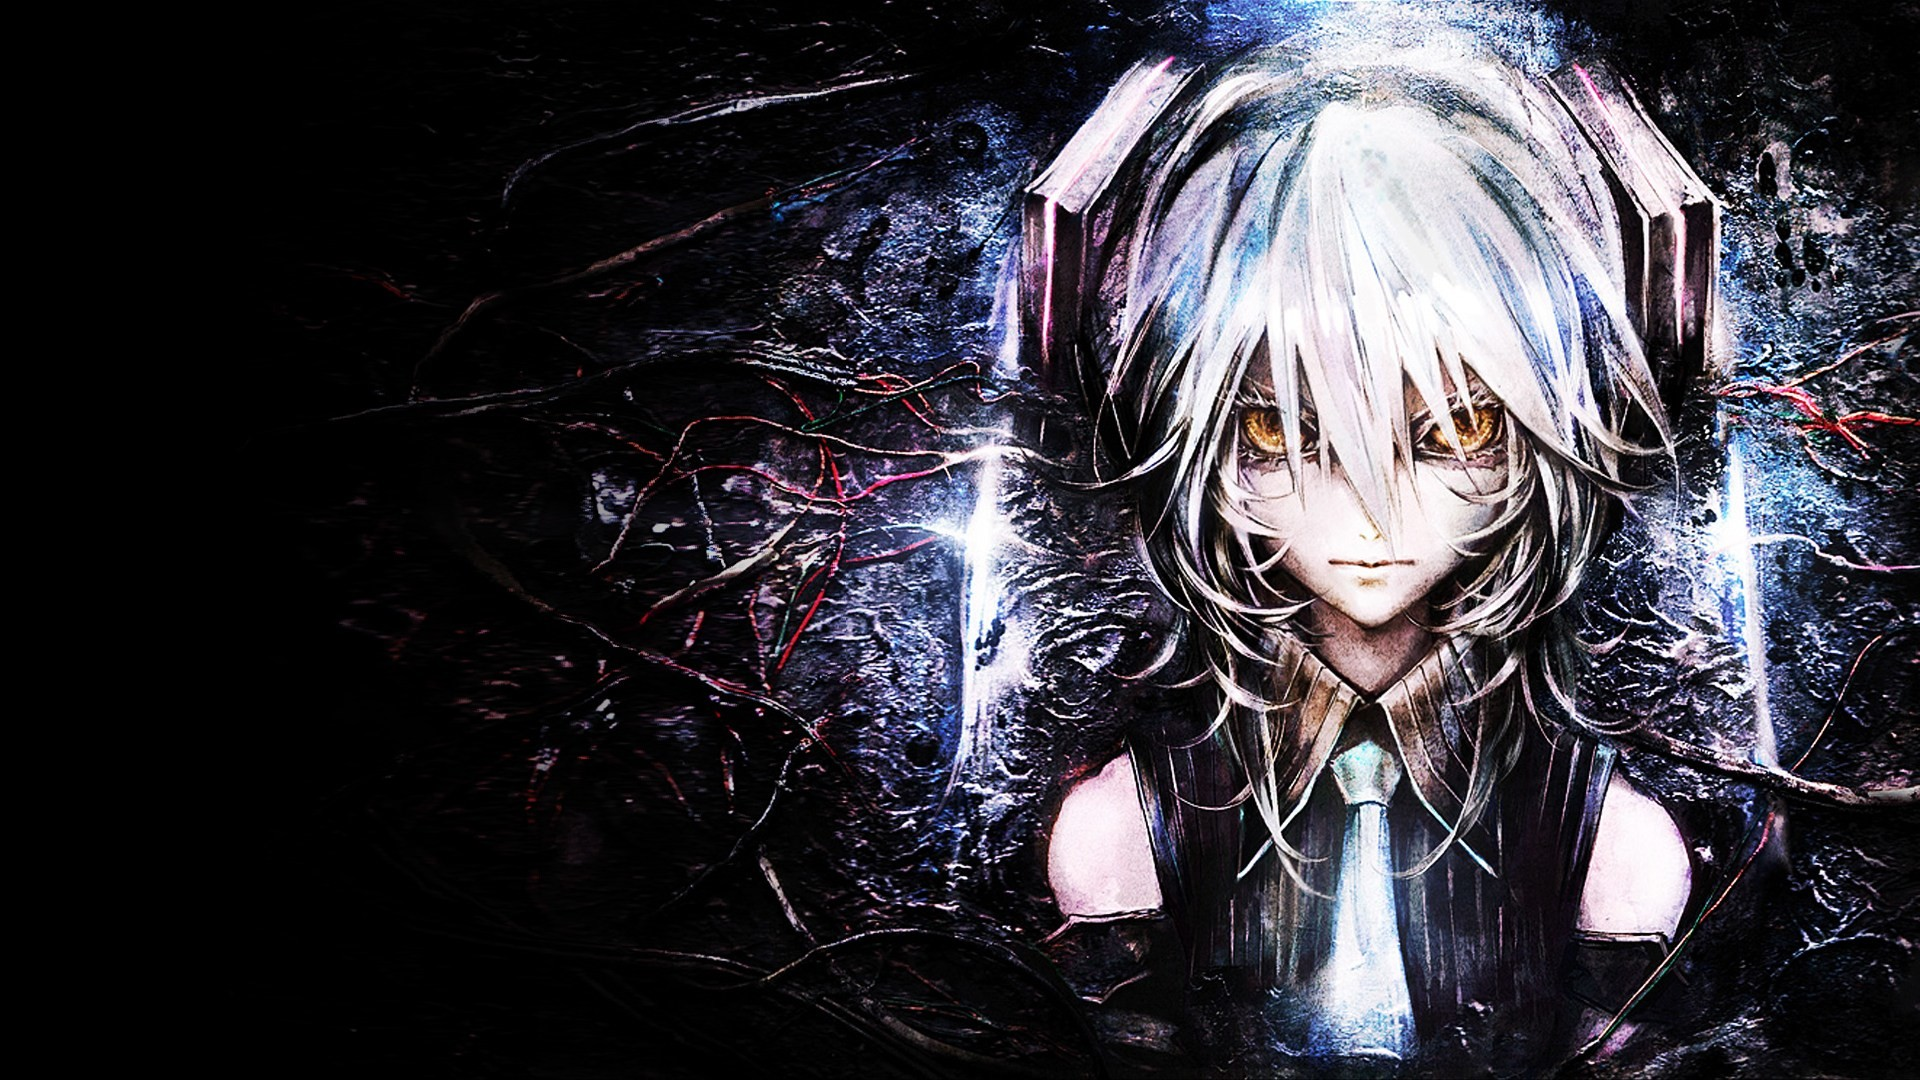 Res: 1920x1080, hd anime wallpaper